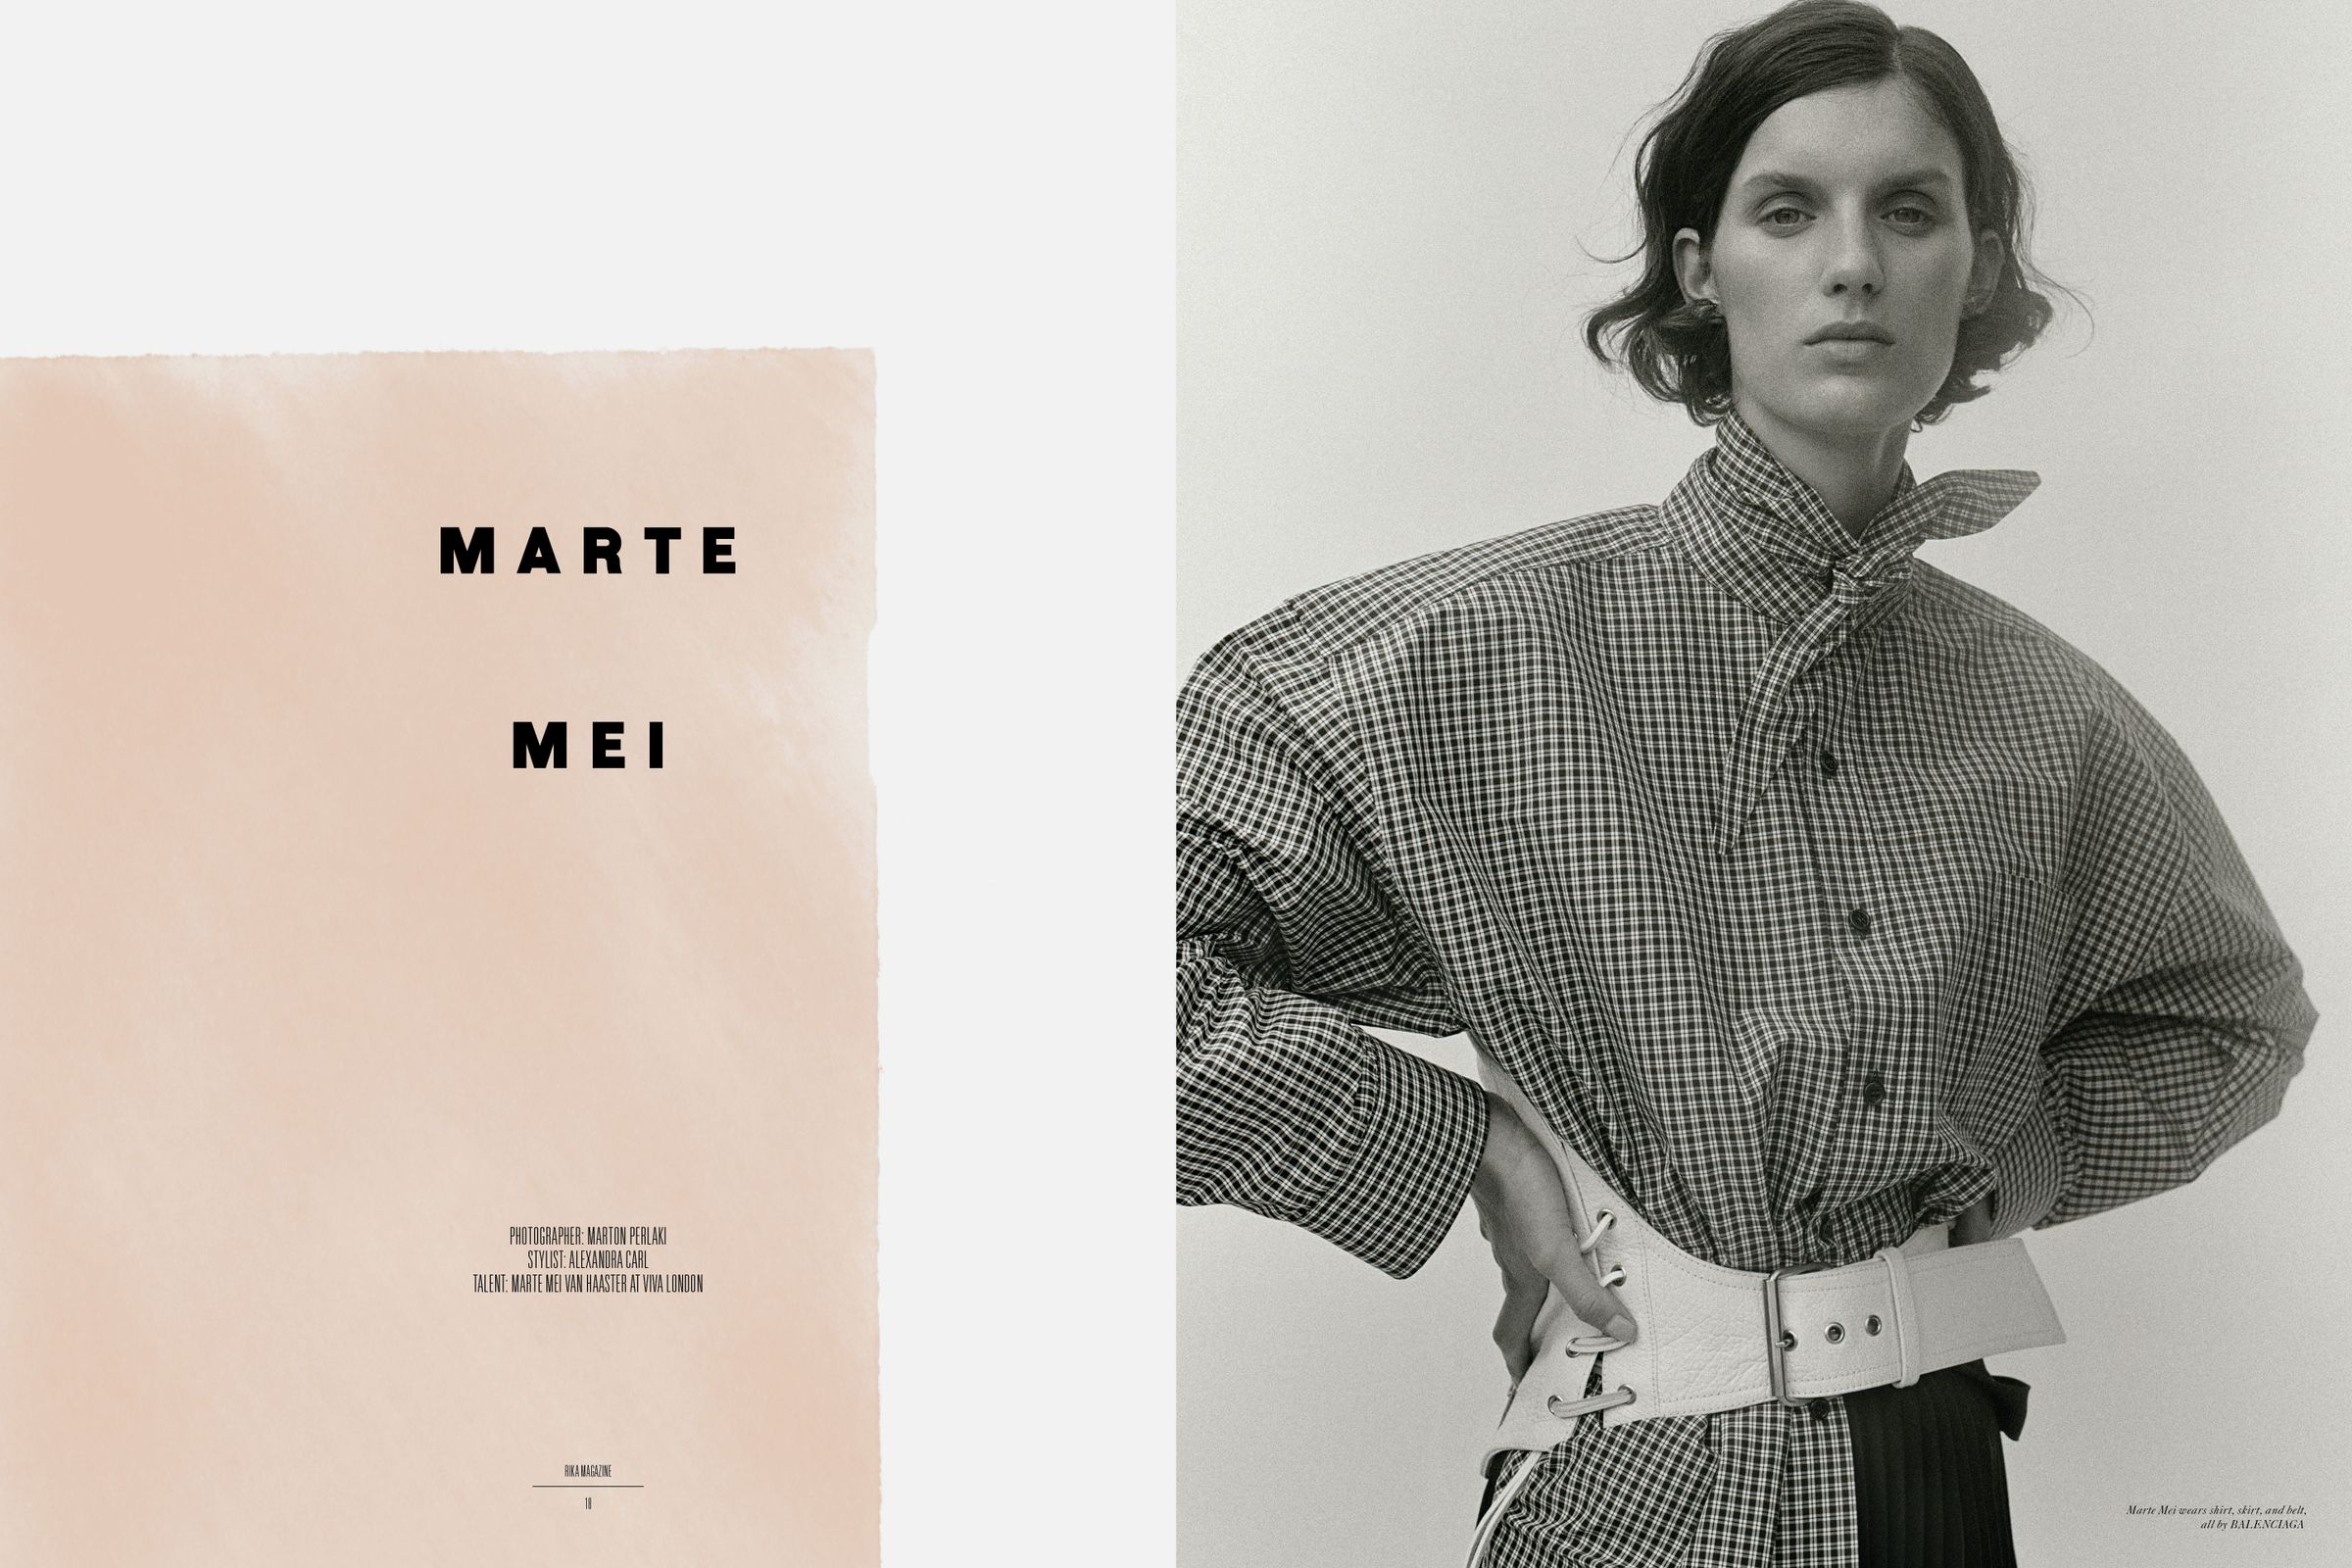 Rika Magazine issue no. 16 Marte Mei van Haaster photographed by Marton Perlaki